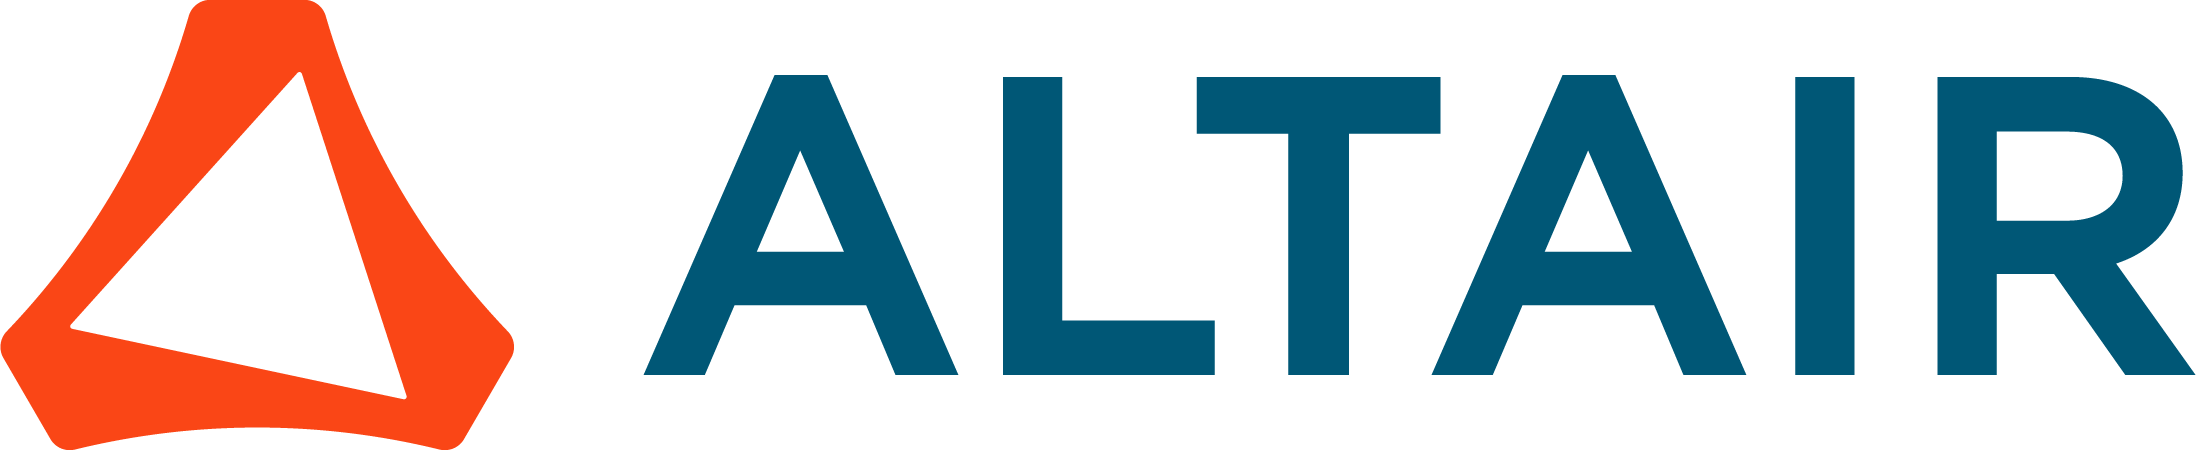 Matereality for Altair users